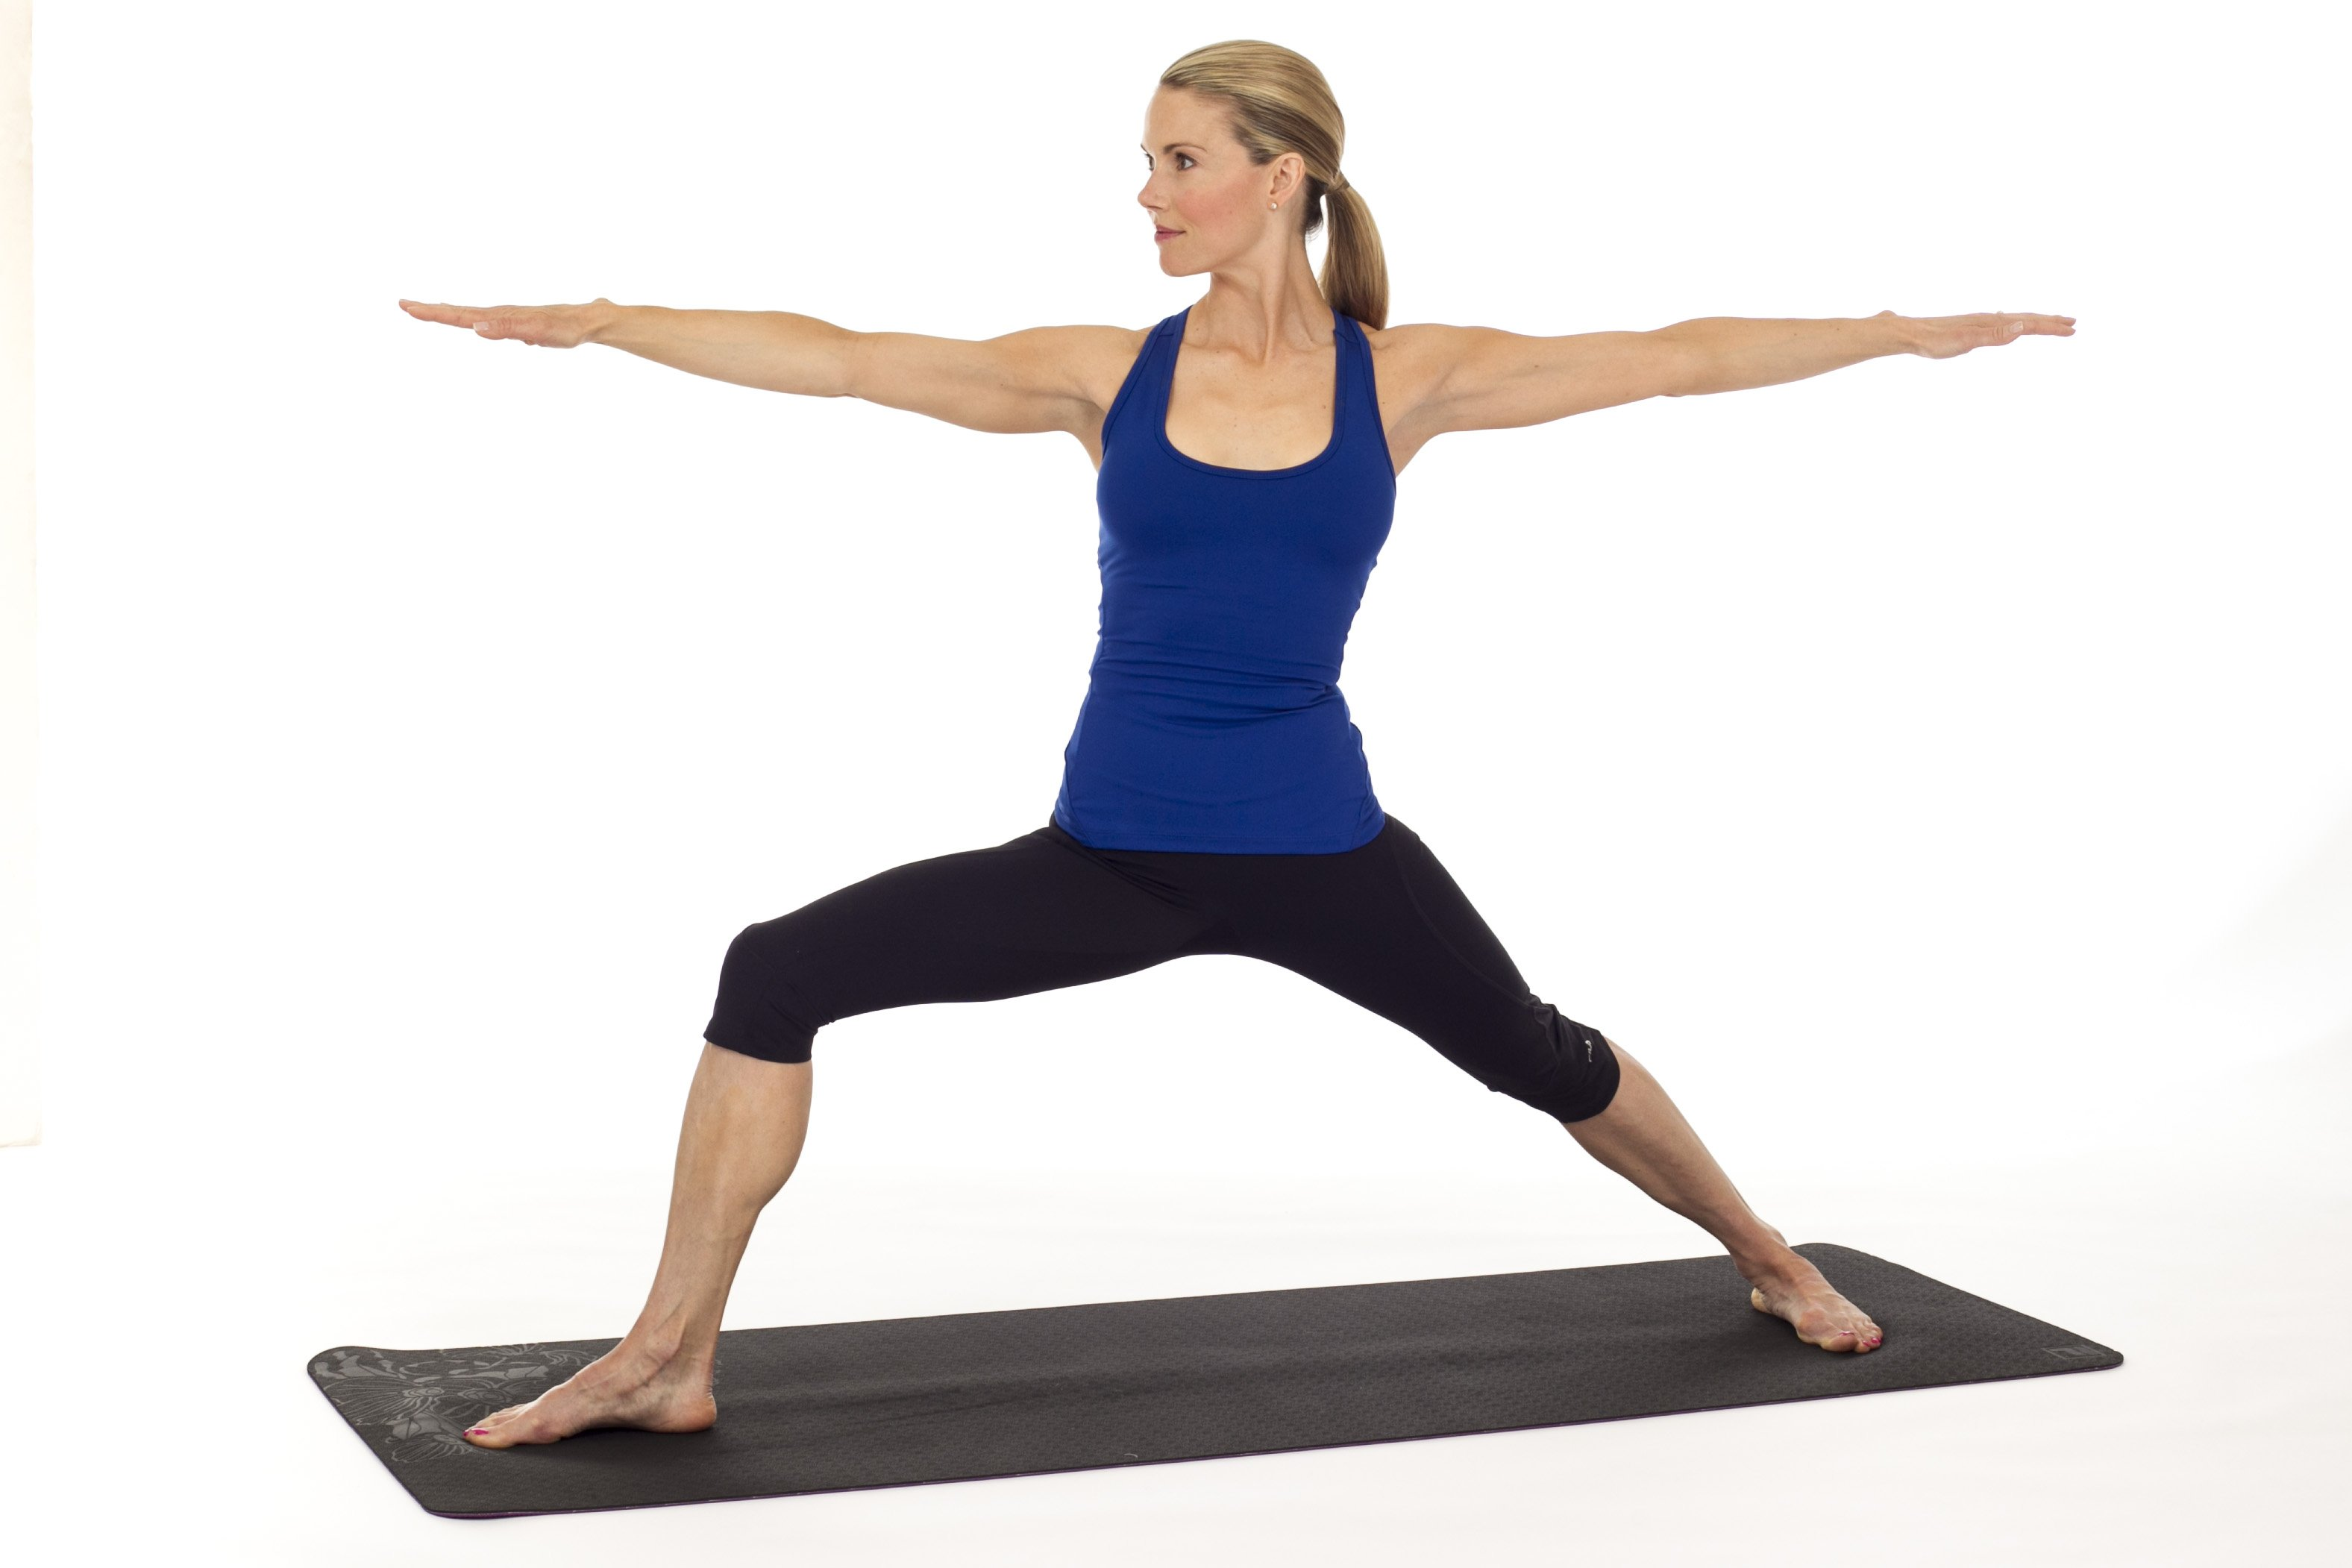 Yoga at Home: Inversion poses - Why Theyre Valuable